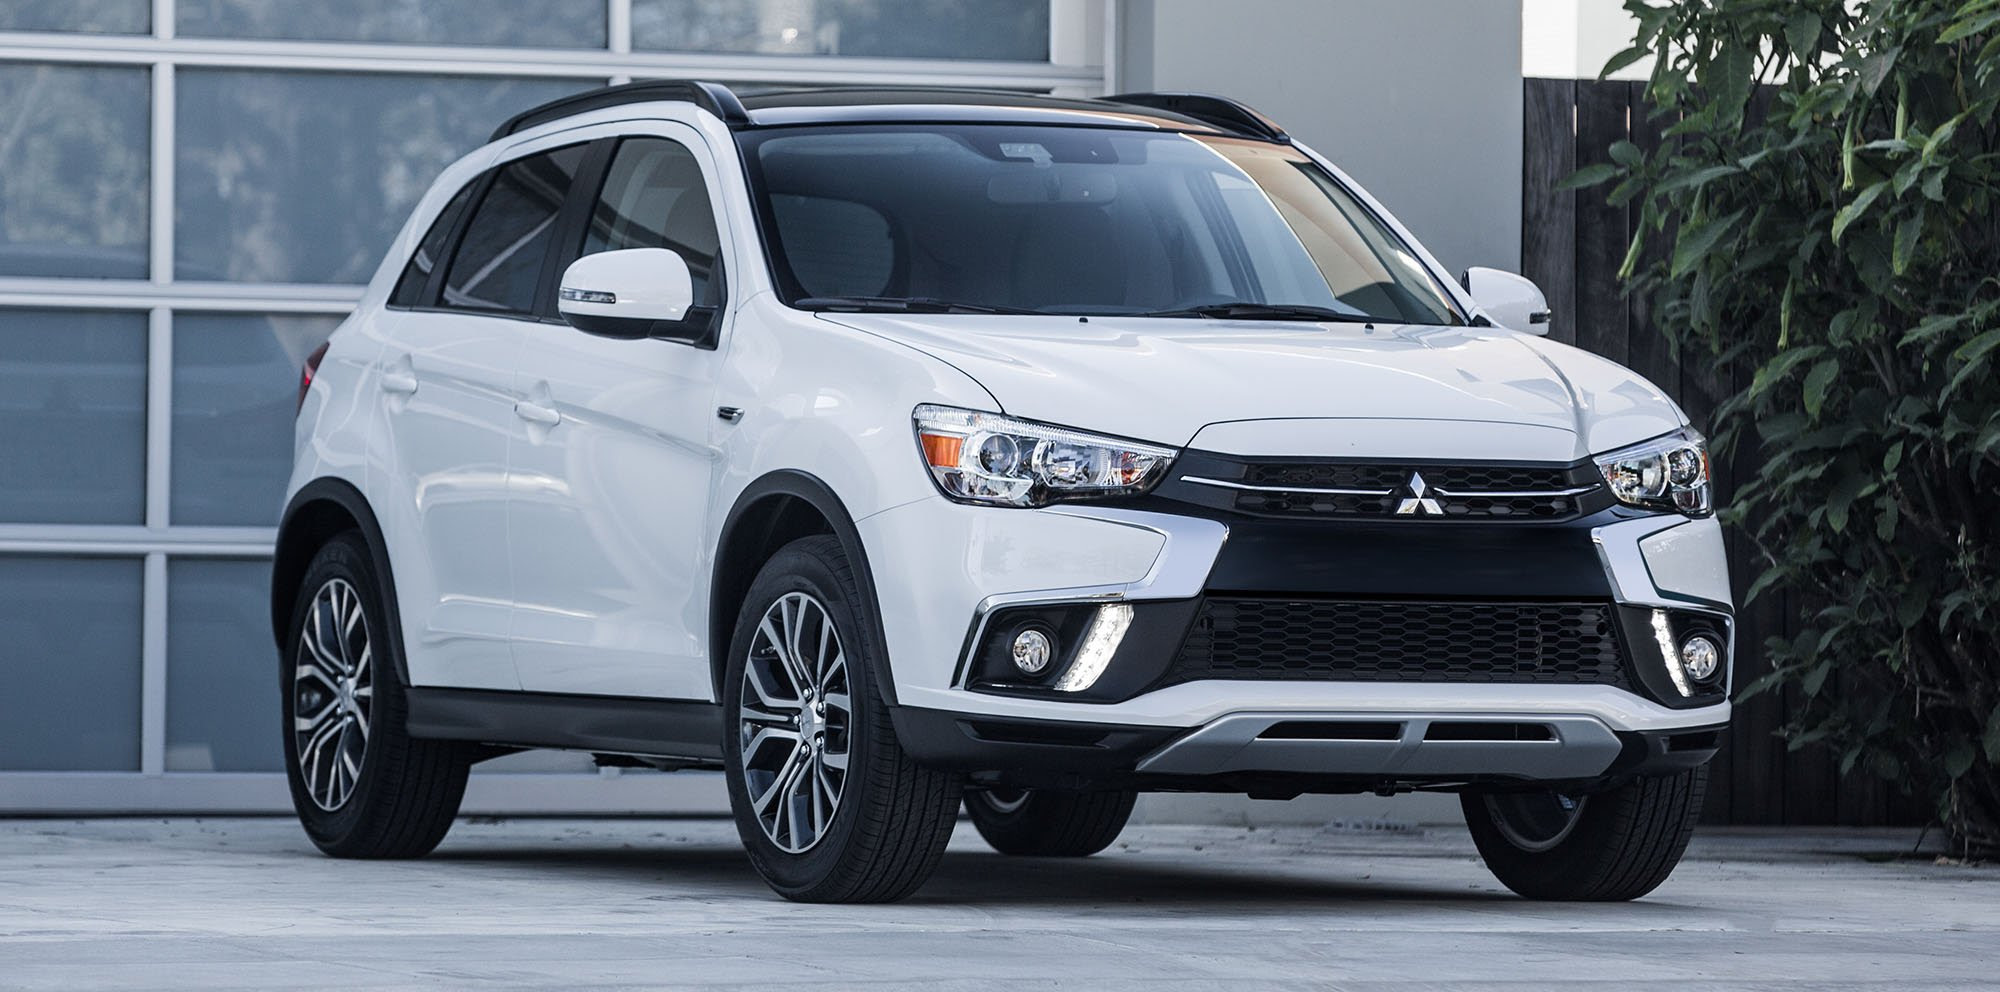 2018 Mitsubishi ASX update revealed in the USA  Photos 1 of 4